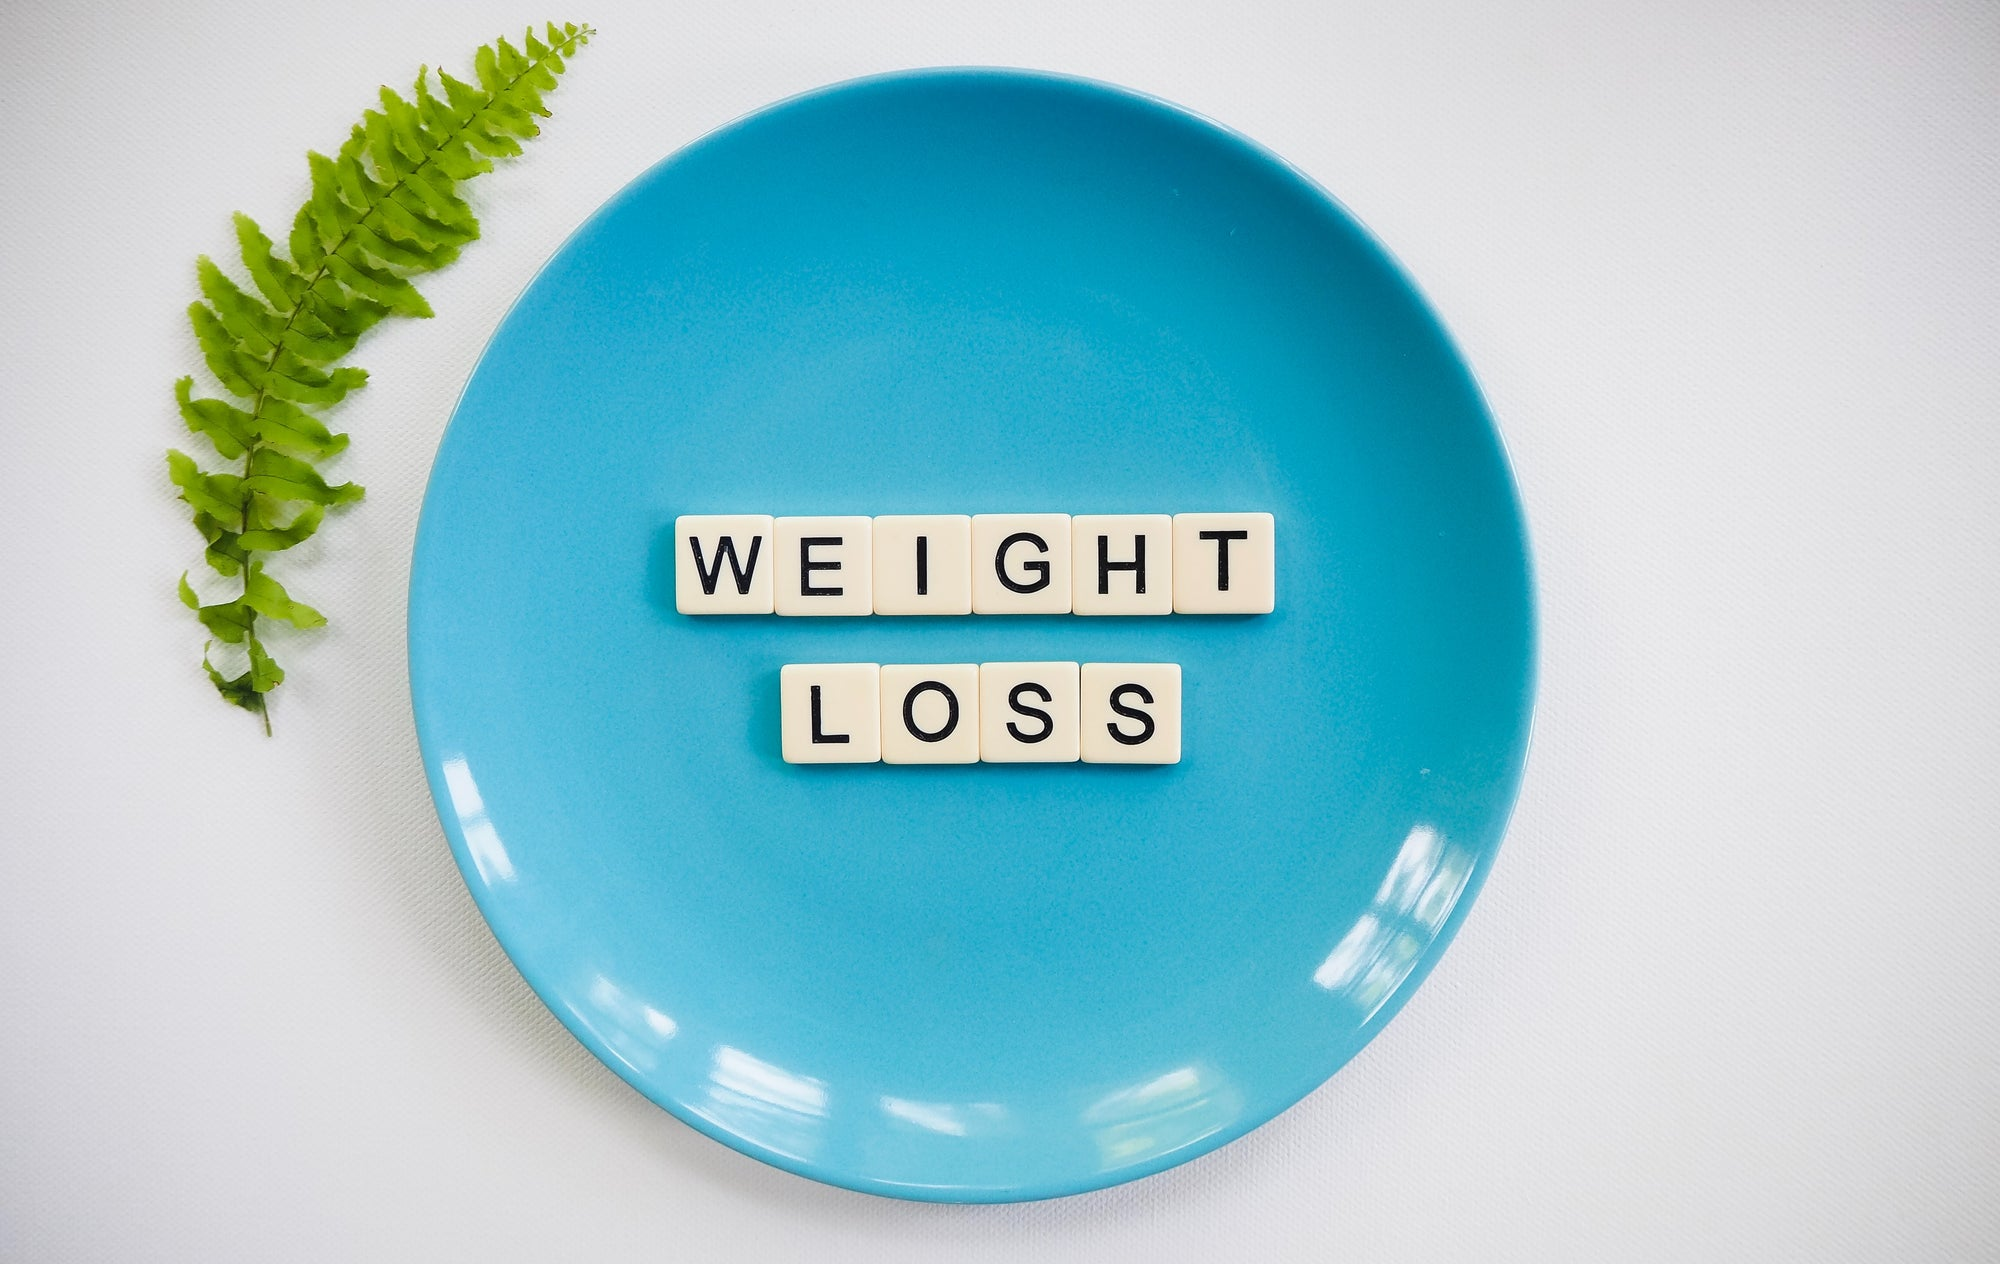 5 Biggest Myths About Weight Loss